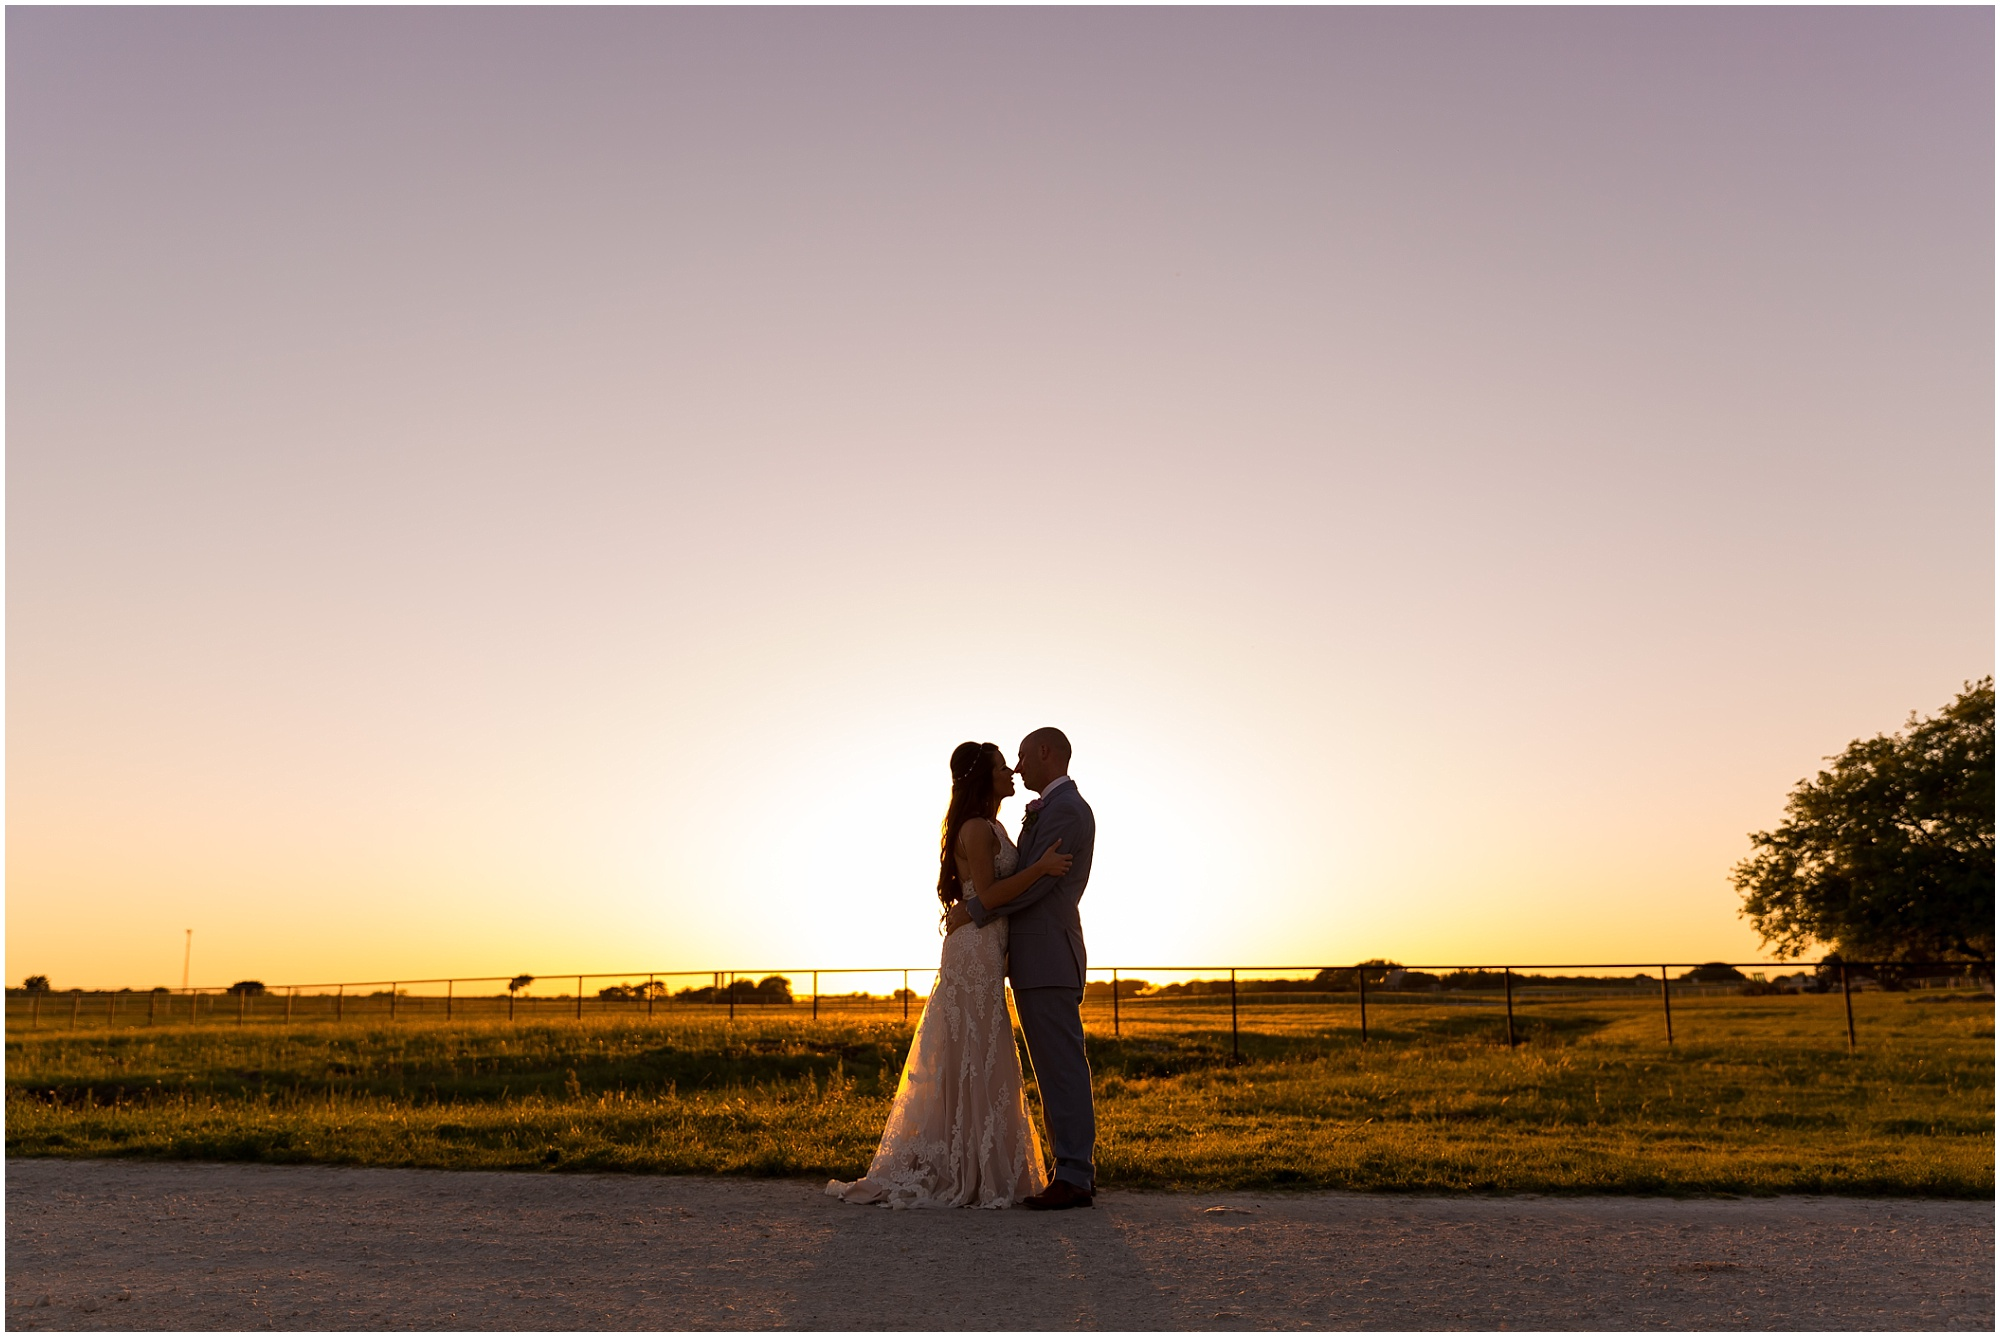 A bride and groom embrace with the Texas sunset behind them during their spring wedding day at Gathering Oaks Retreat in Crawford, Texas | Jason & Melaina Photography | www.jasonandmelaina.com